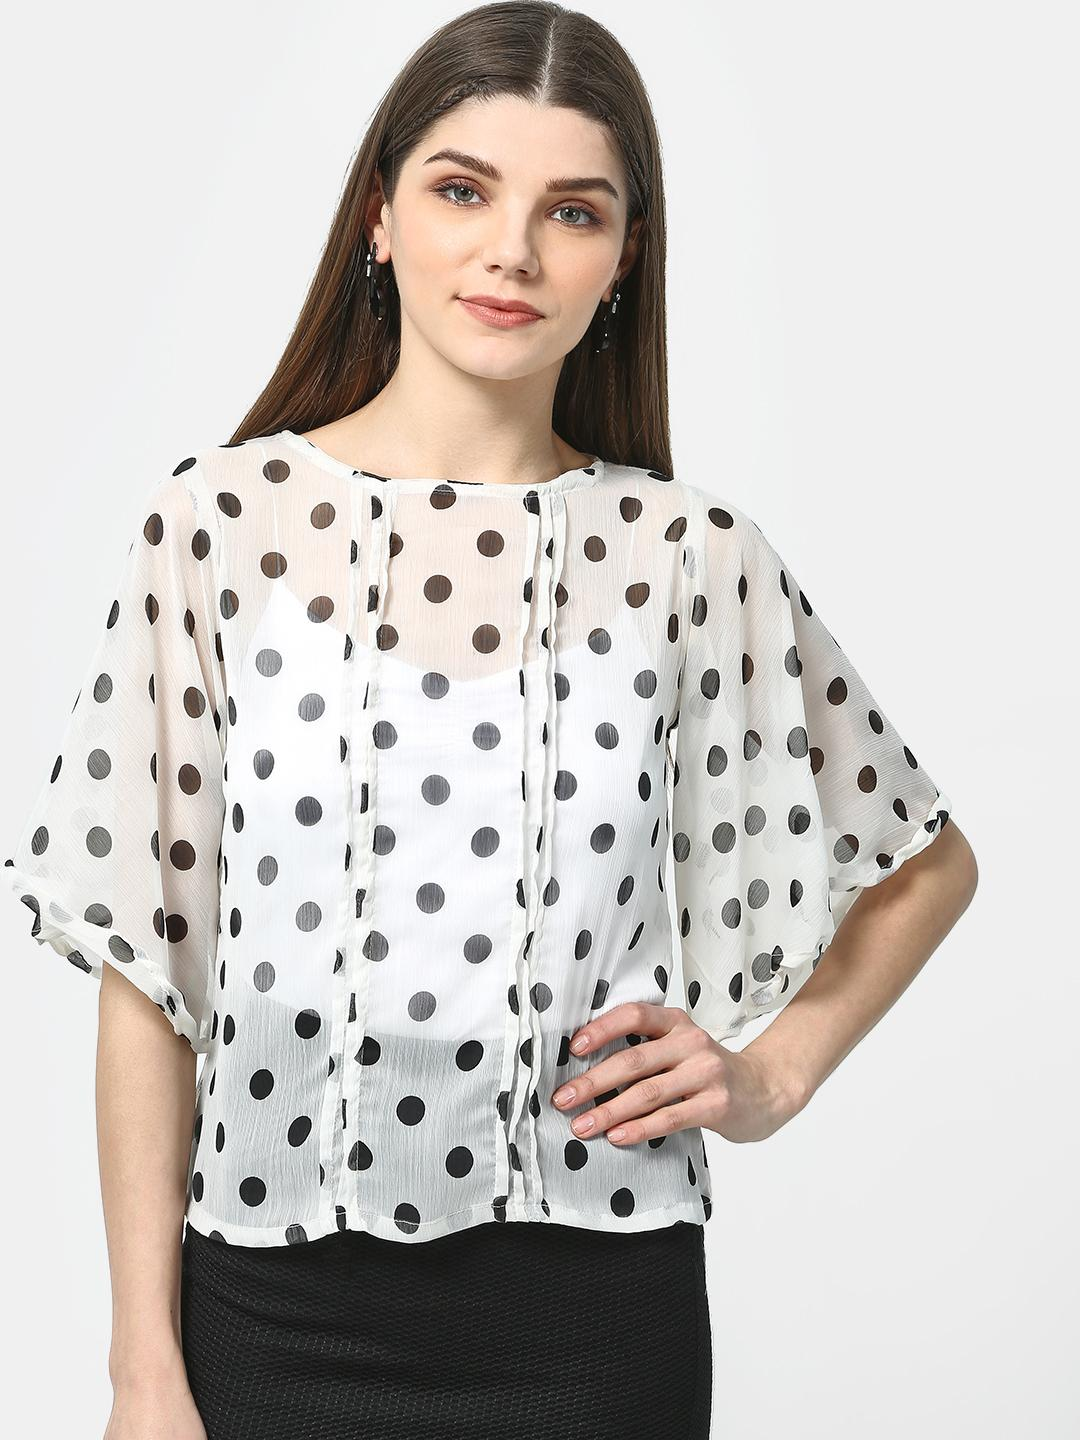 Cation White Kimono Sleeve Polka Dot Top 1